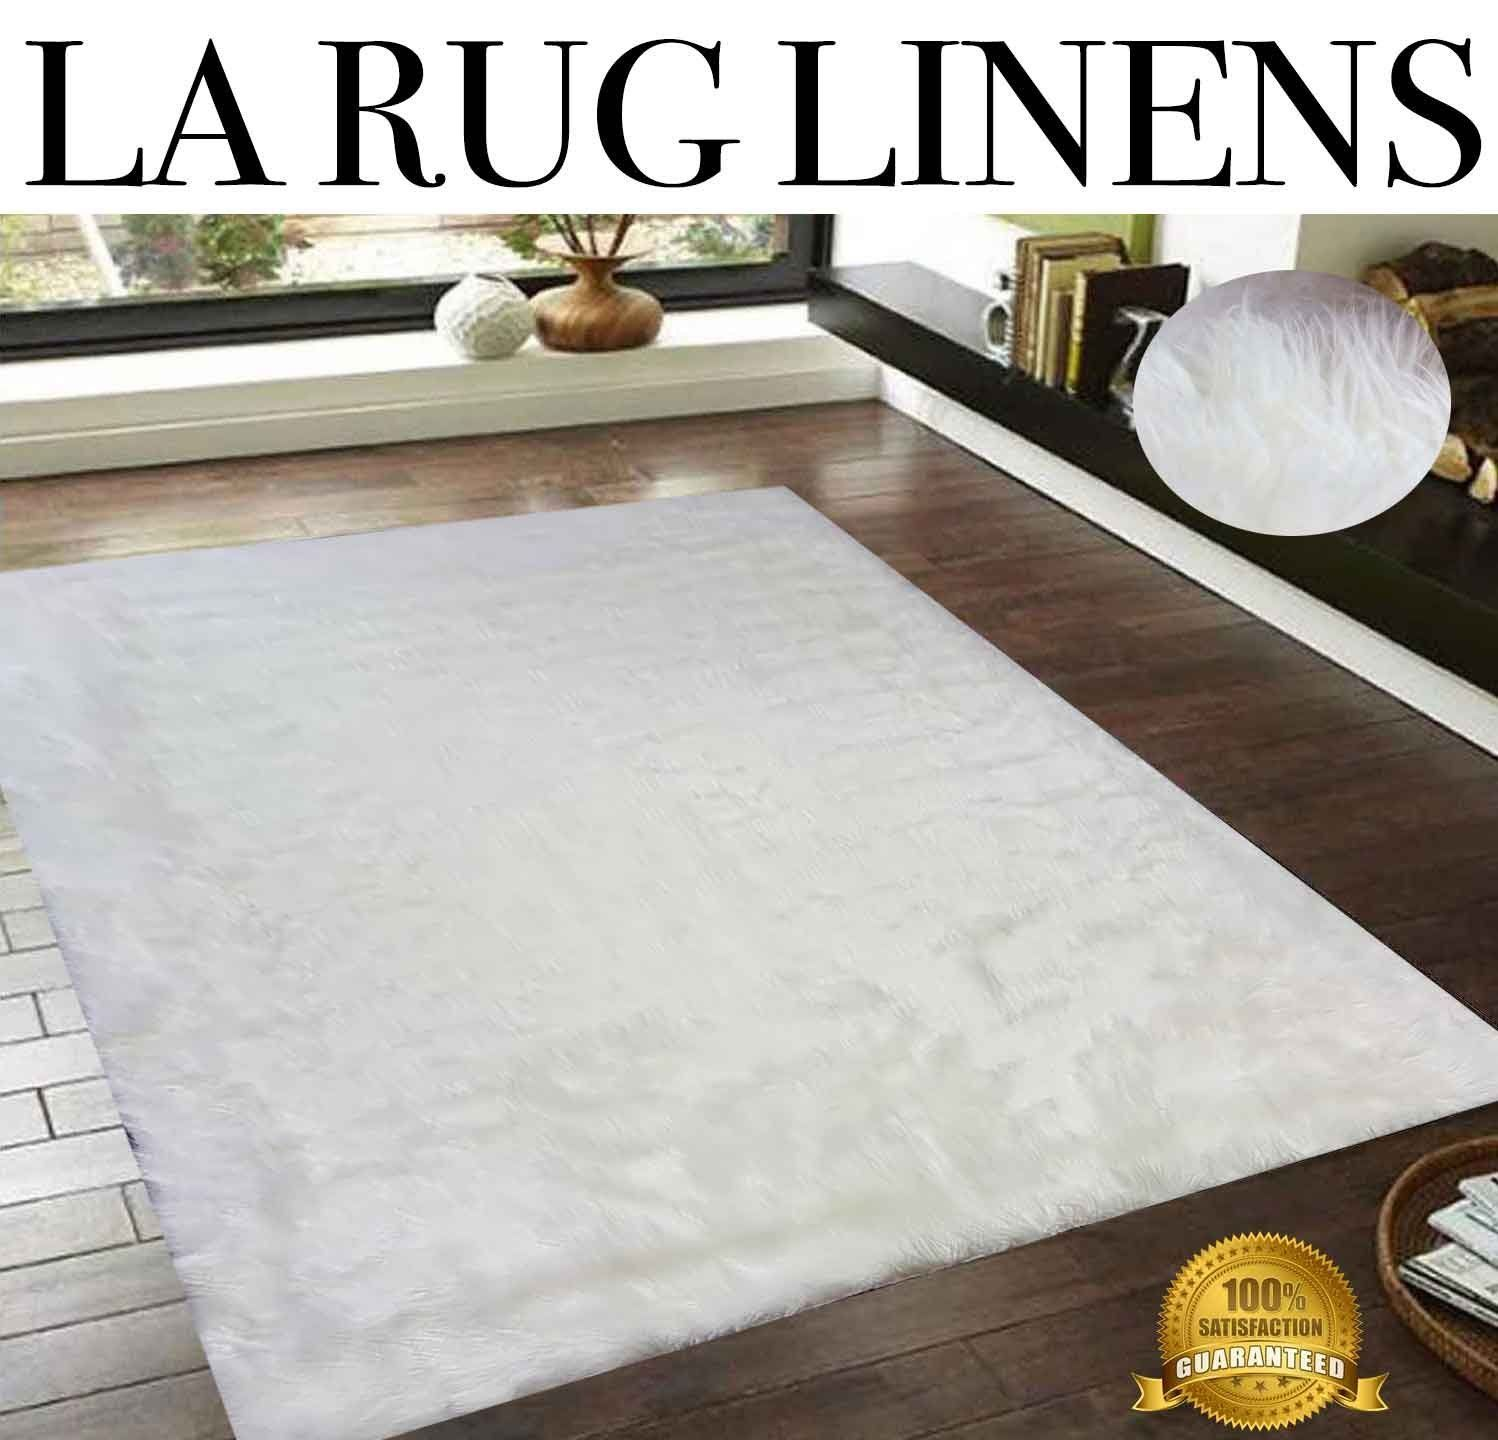 7X7 Area Rugs For Dining Room White Blanco Faux Fur Shaggy Shag Area Rug 5 X 7 High End Designer